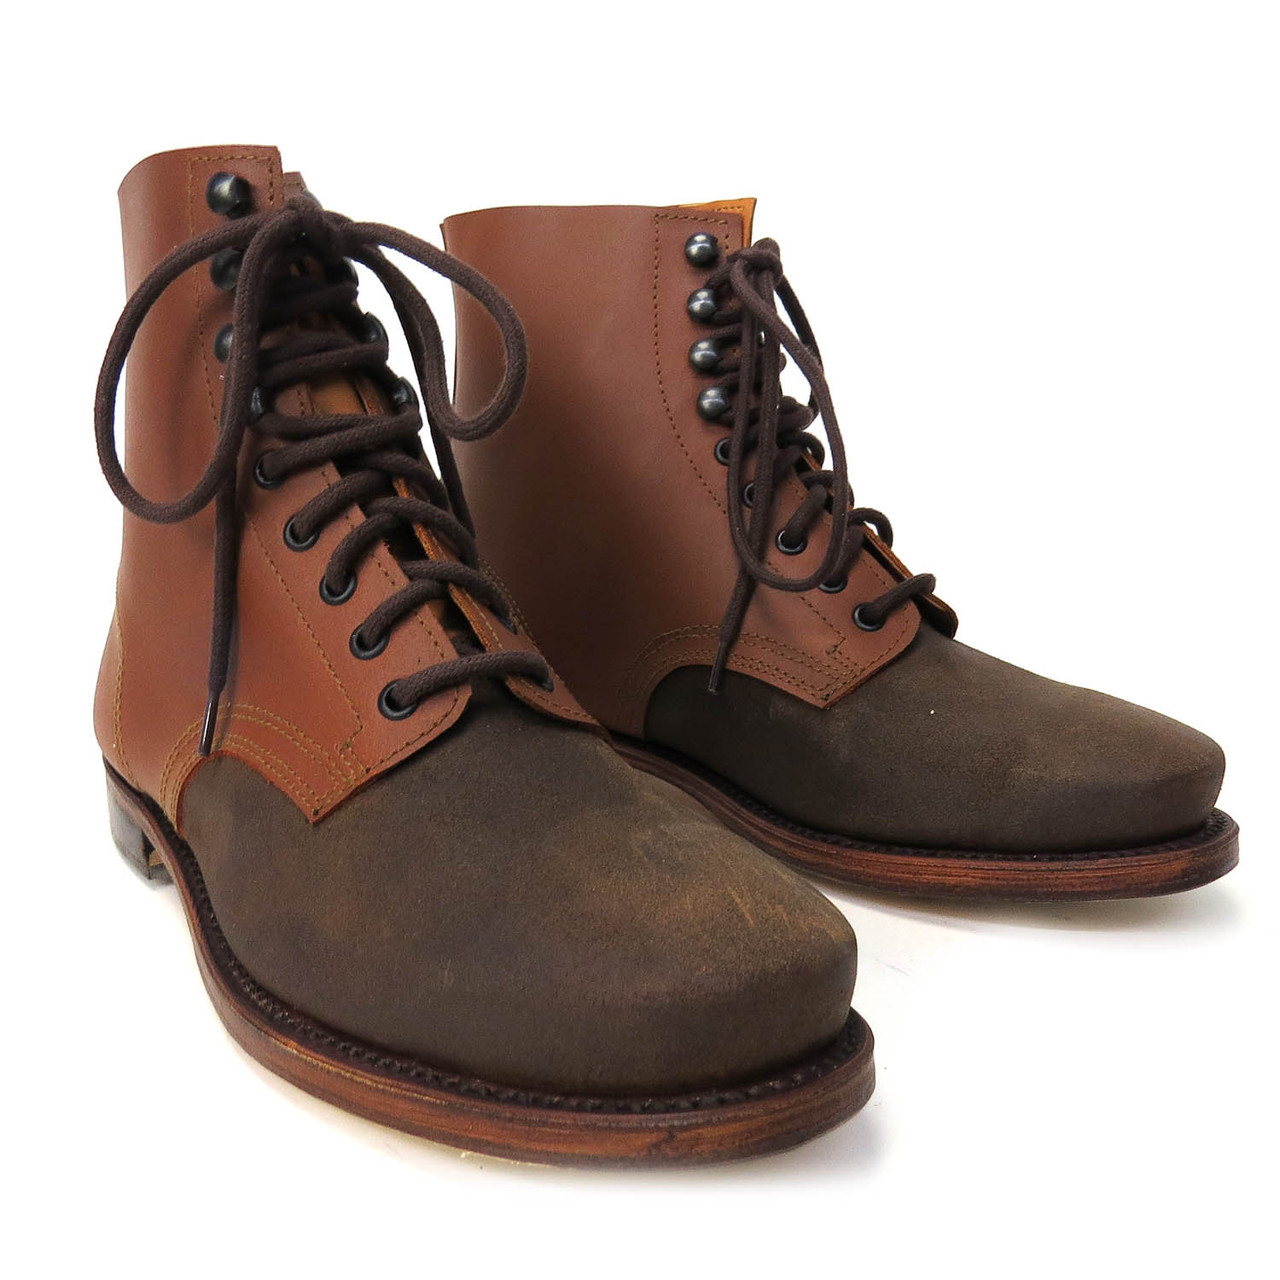 M37 Boots